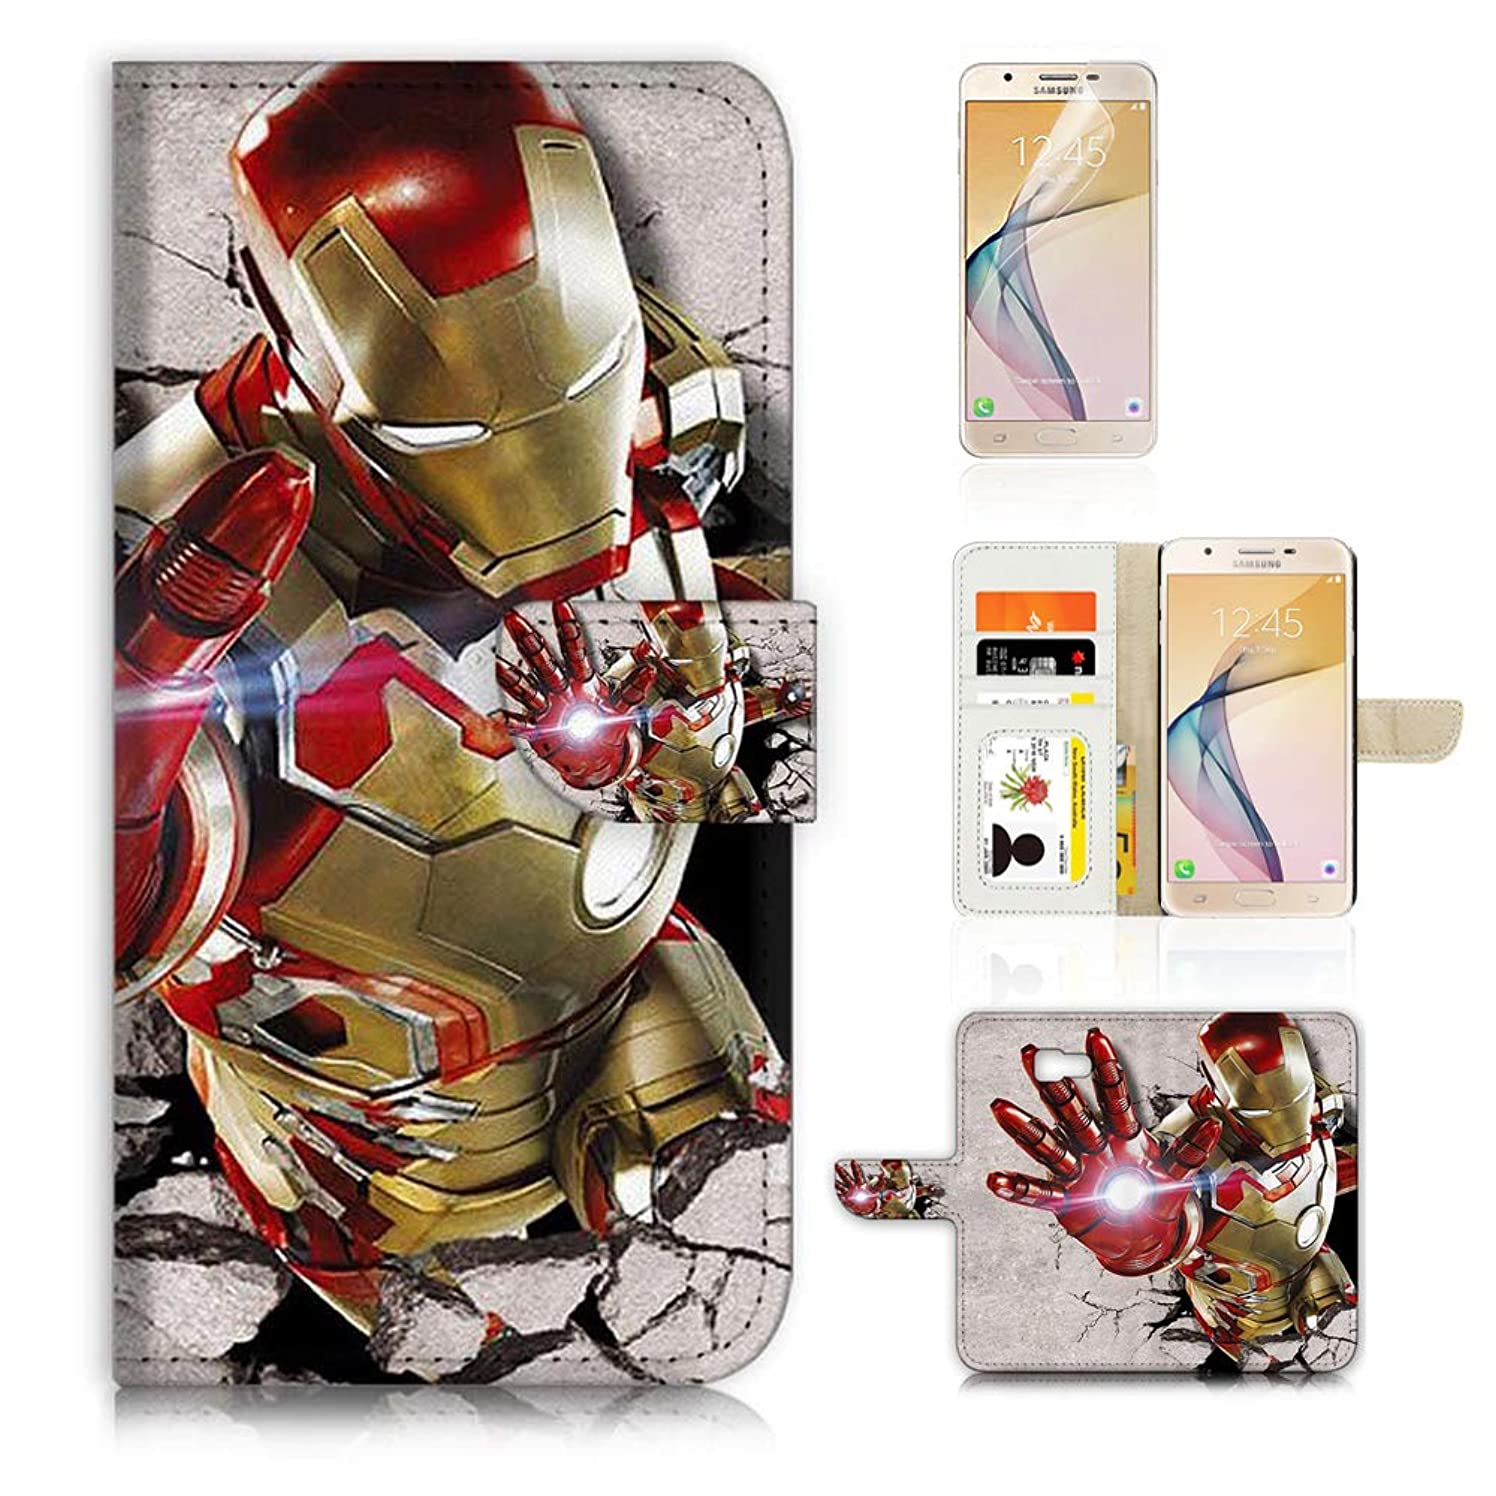 (for Samsung J7 Prime / J7 V / J7 Perx / J7 2017 / J7 Sky Pro/Galaxy Halo) Flip Wallet Case Cover & Screen Protector Bundle - A21689 Ironman